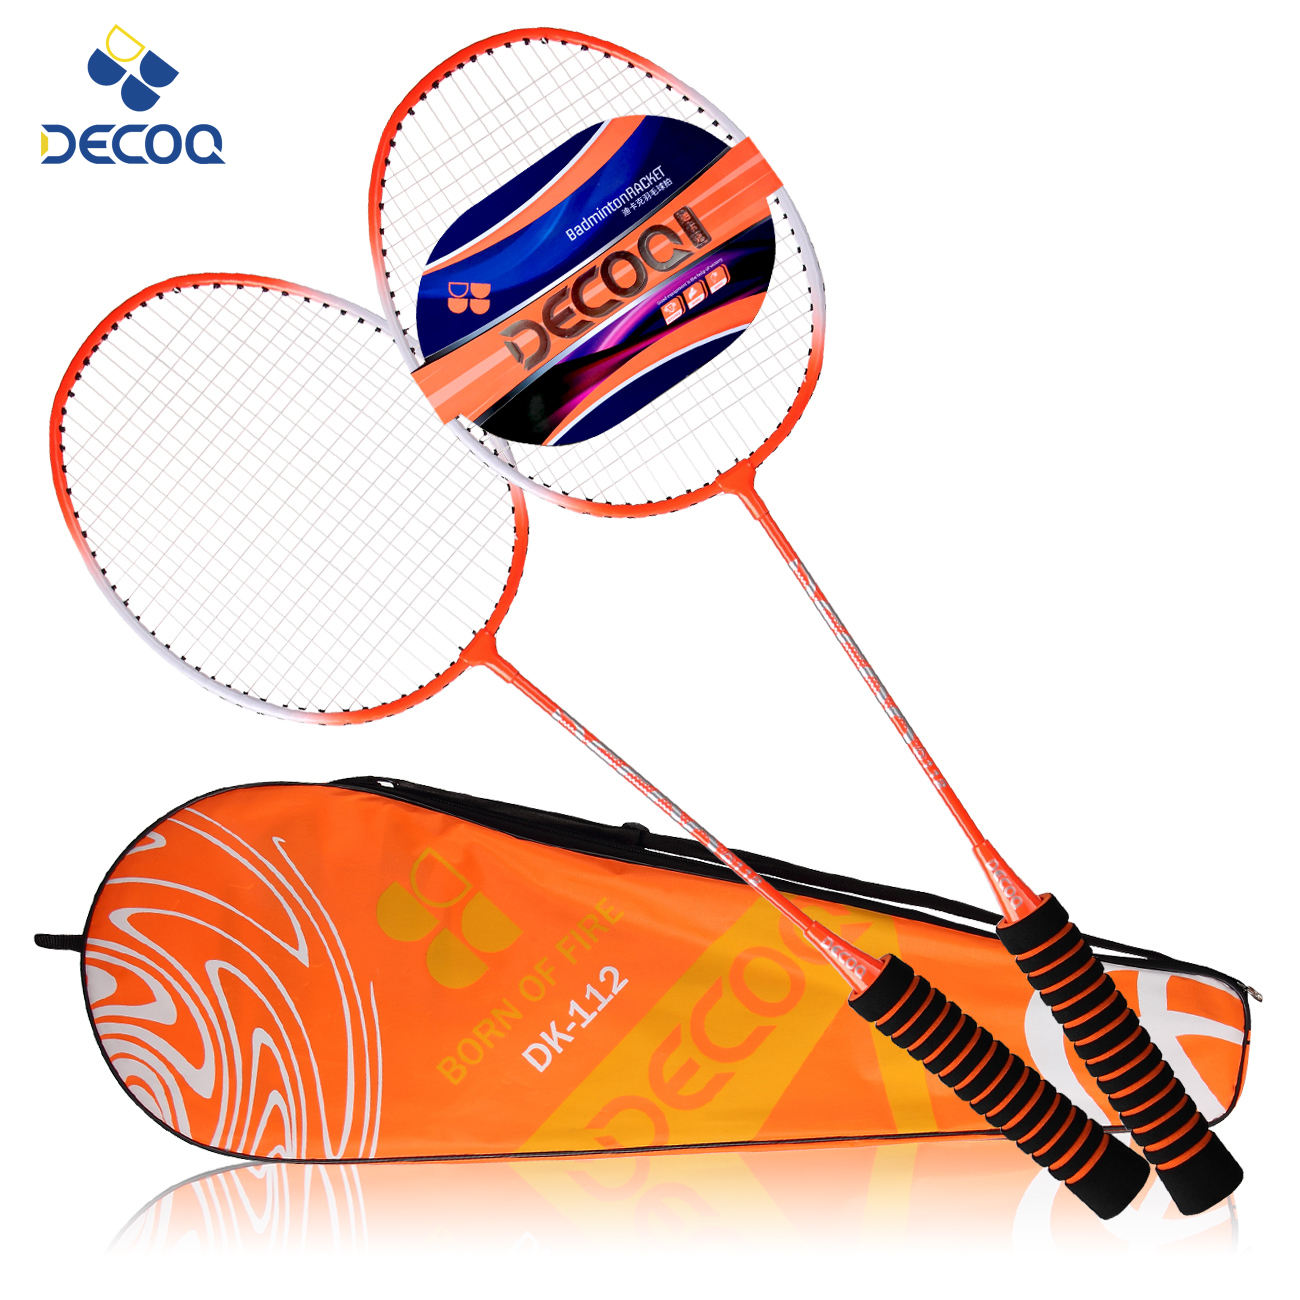 DECOQ Cheap Steel Alloy Badminton Racket With Foam Grip Wholesale Ball Badminton Racket